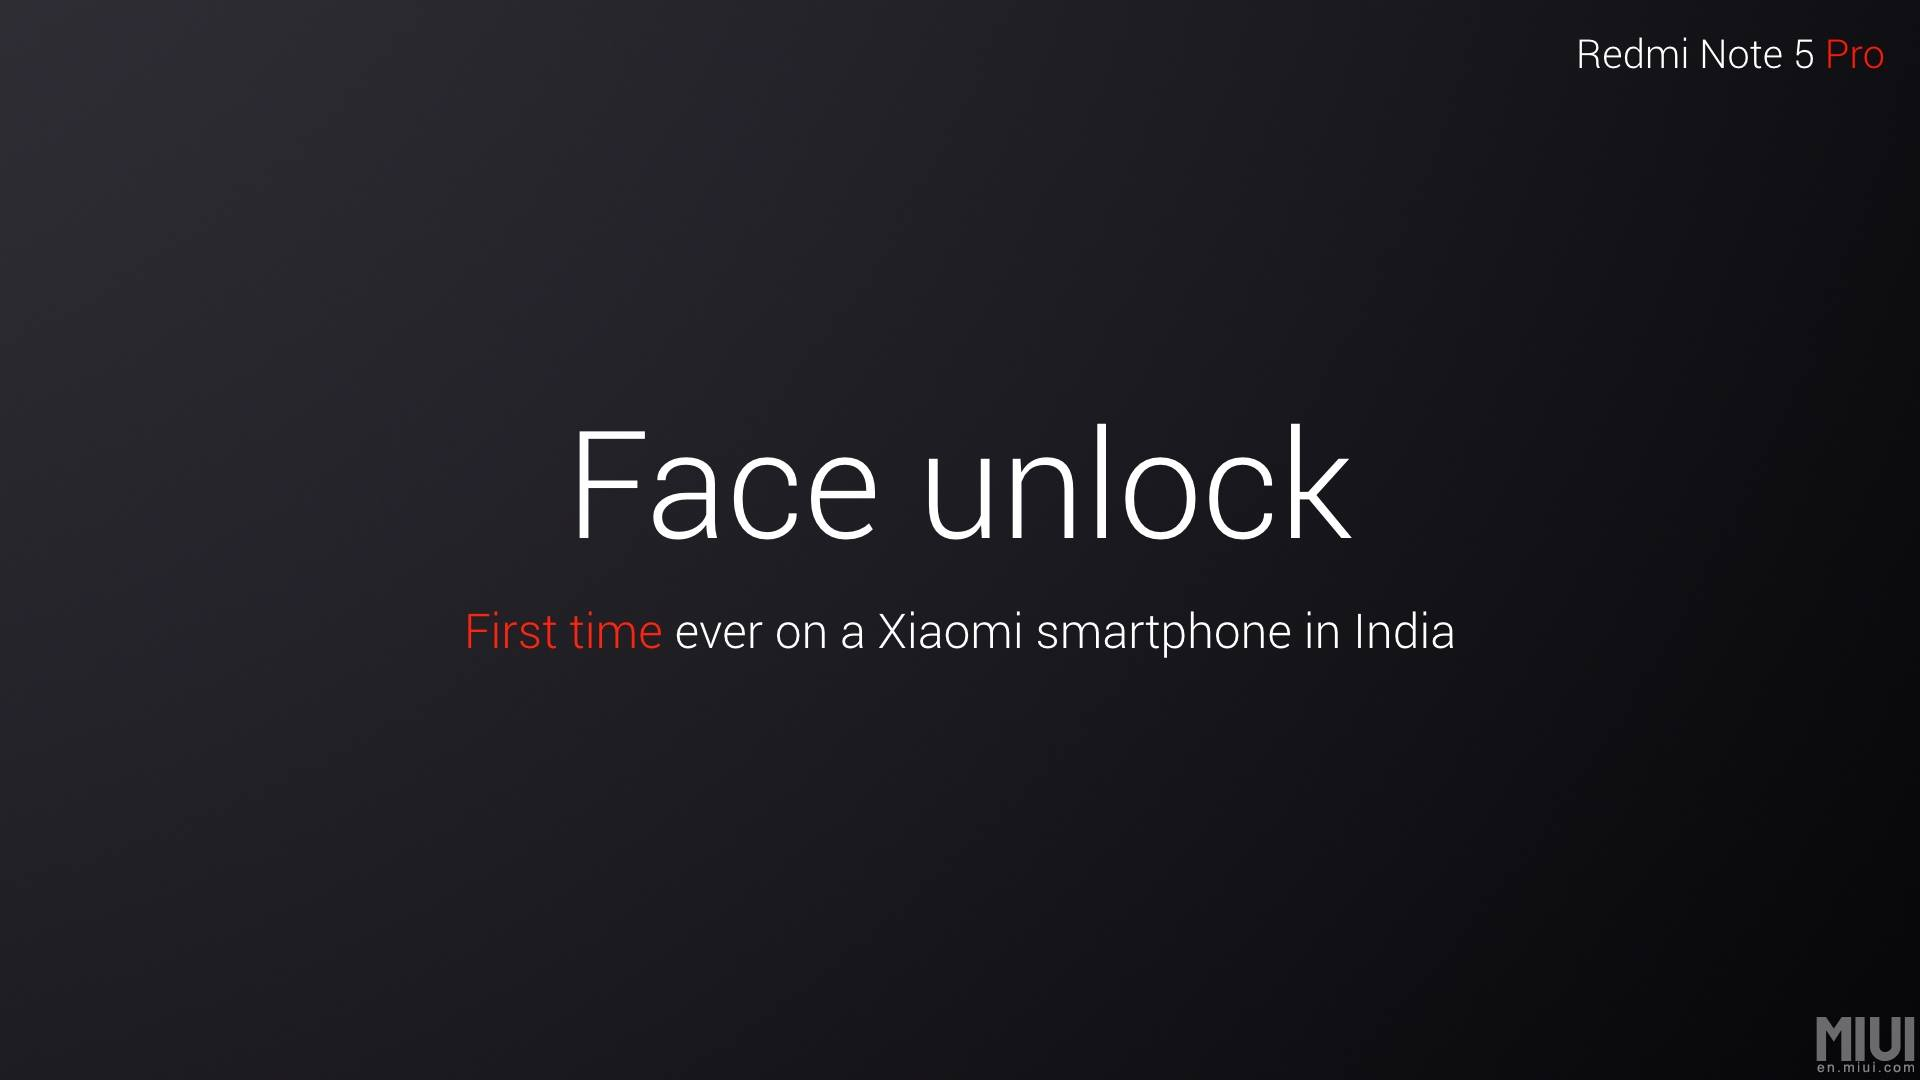 RedMi Note 5 Pro launched with Selfie Light, Face Unlock and